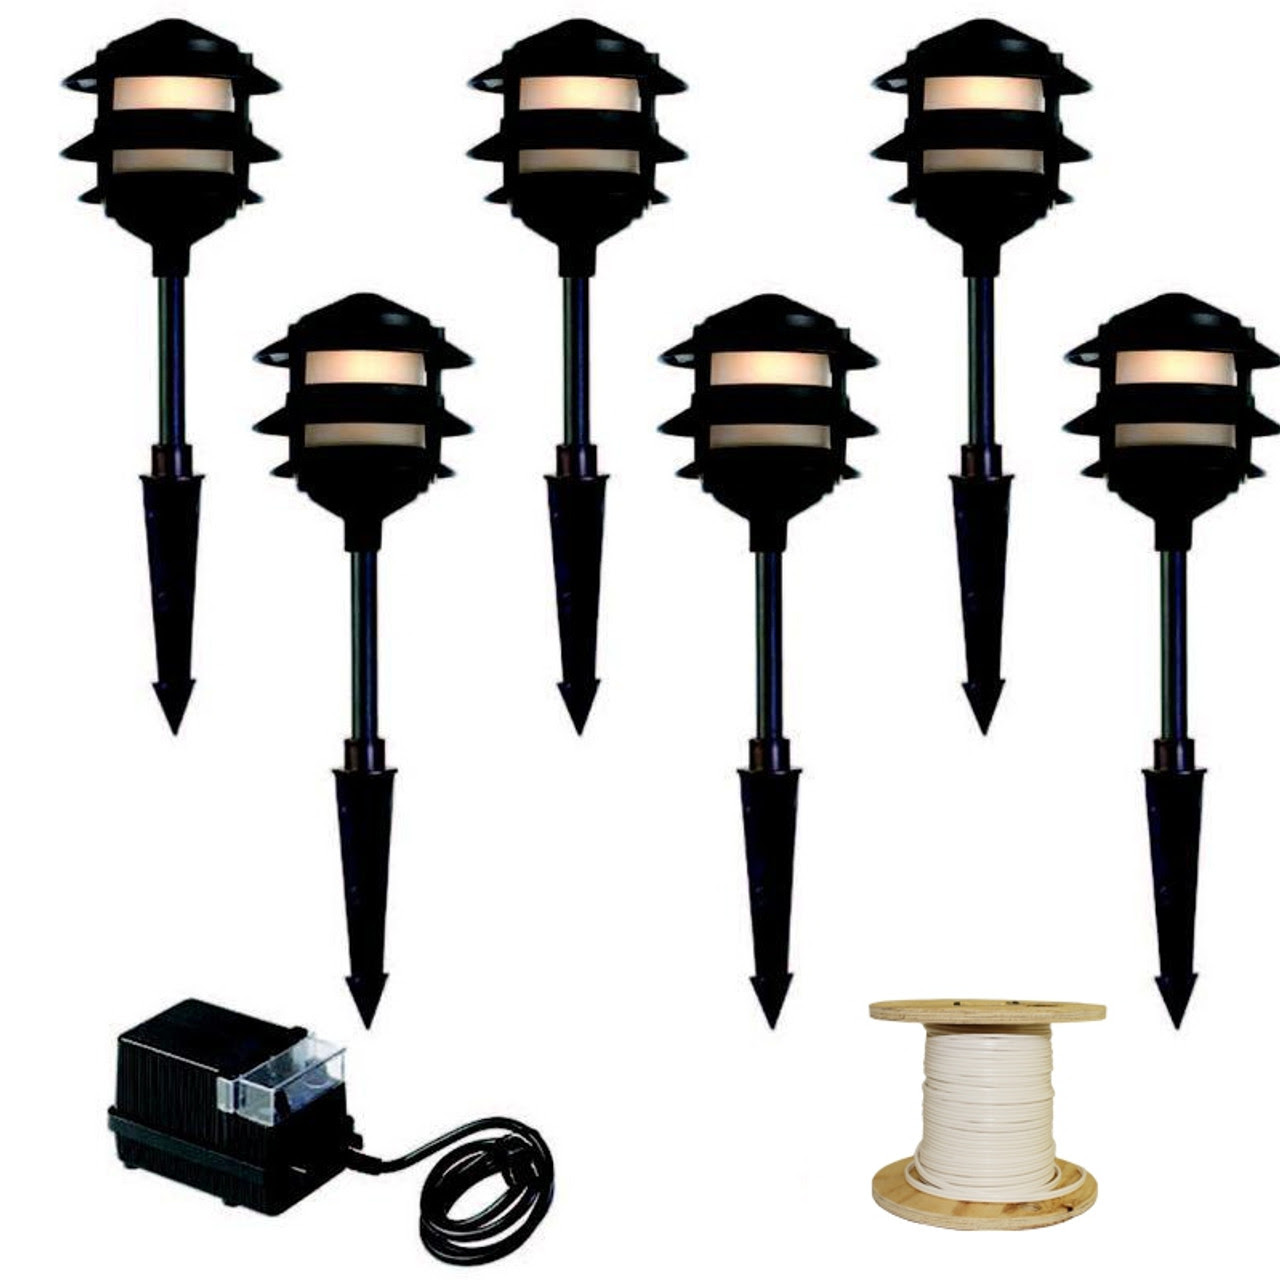 LED DIY Landscape Lighting Kits